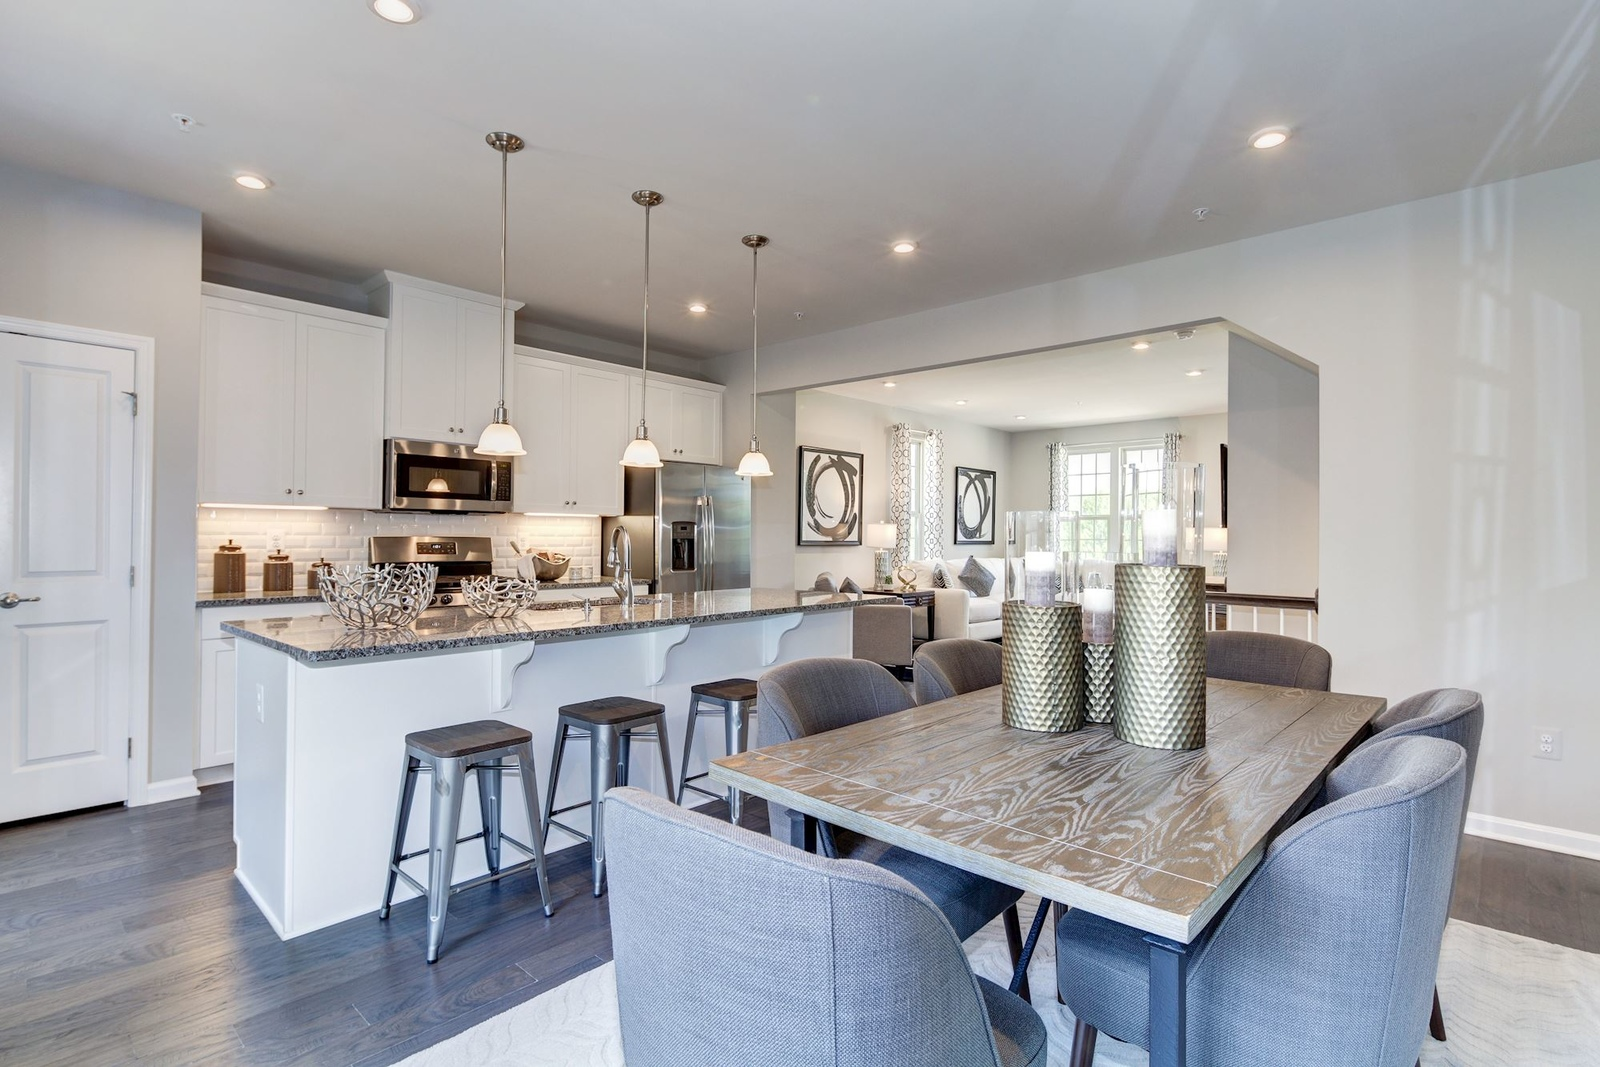 New Homes for sale at Oakdale Village Townhomes in ... on blueprints for houses with open floor plans, mansion plans, i house architecture, i house home, home design floor plans, home builders floor plans, roof plans, split level home floor plans,